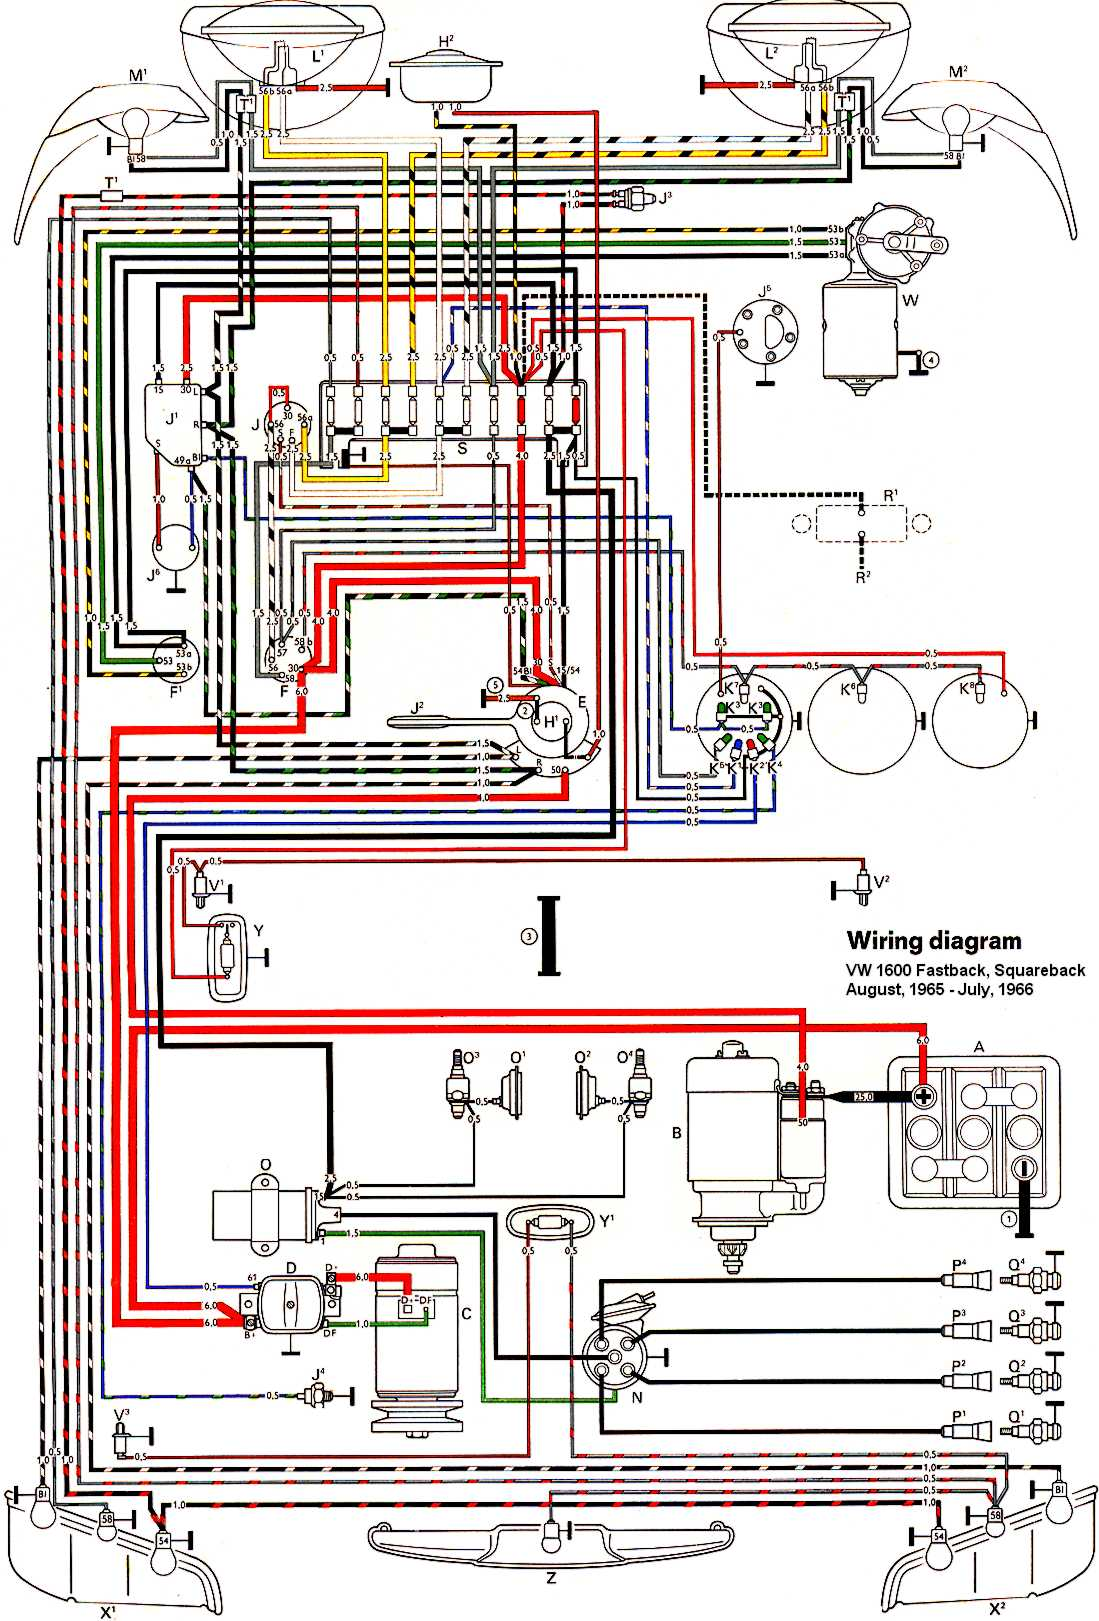 type3_1600_66 thesamba com type 3 wiring diagrams vw bus samba wiring diagram at bayanpartner.co